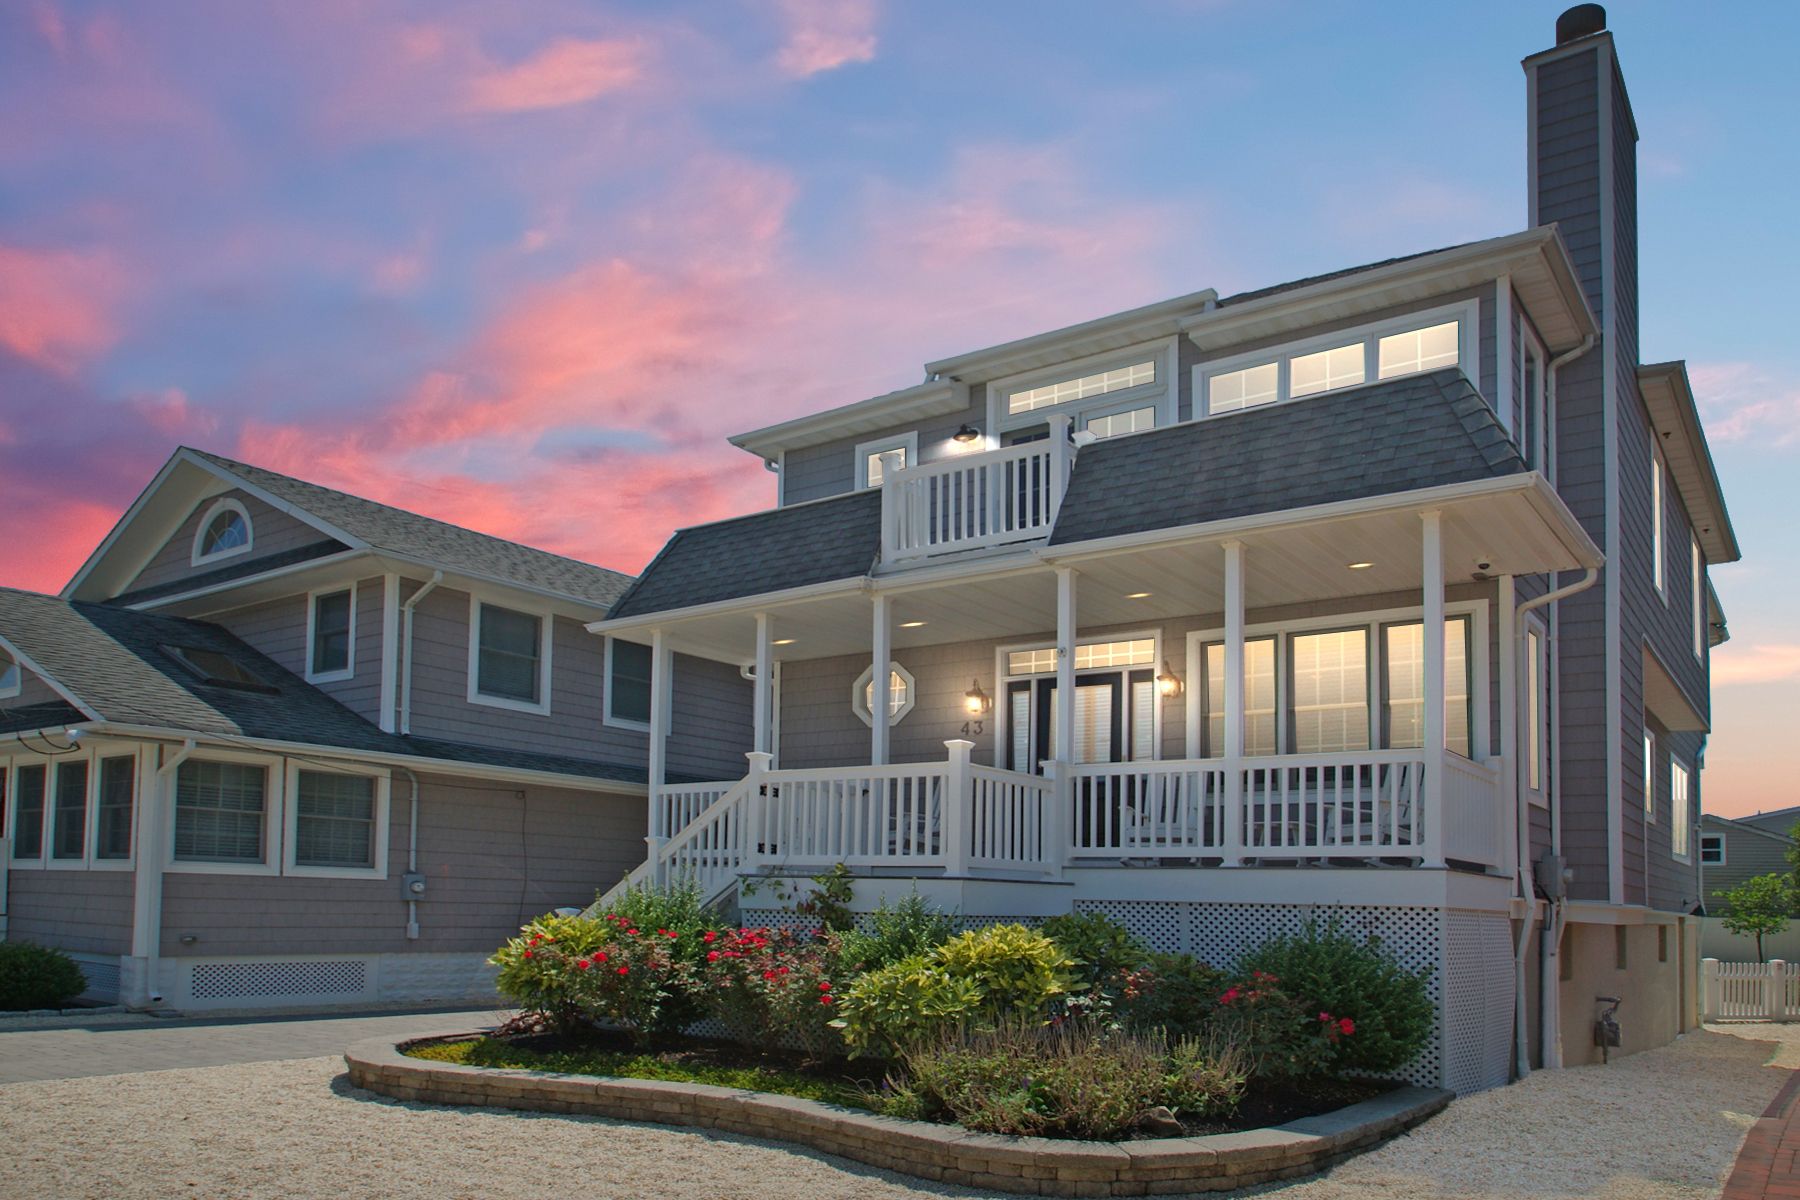 Single Family Homes for Sale at Custom Built Oceanblock Home 43 3rd Avenue, Normandy Beach, New Jersey 08739 United States